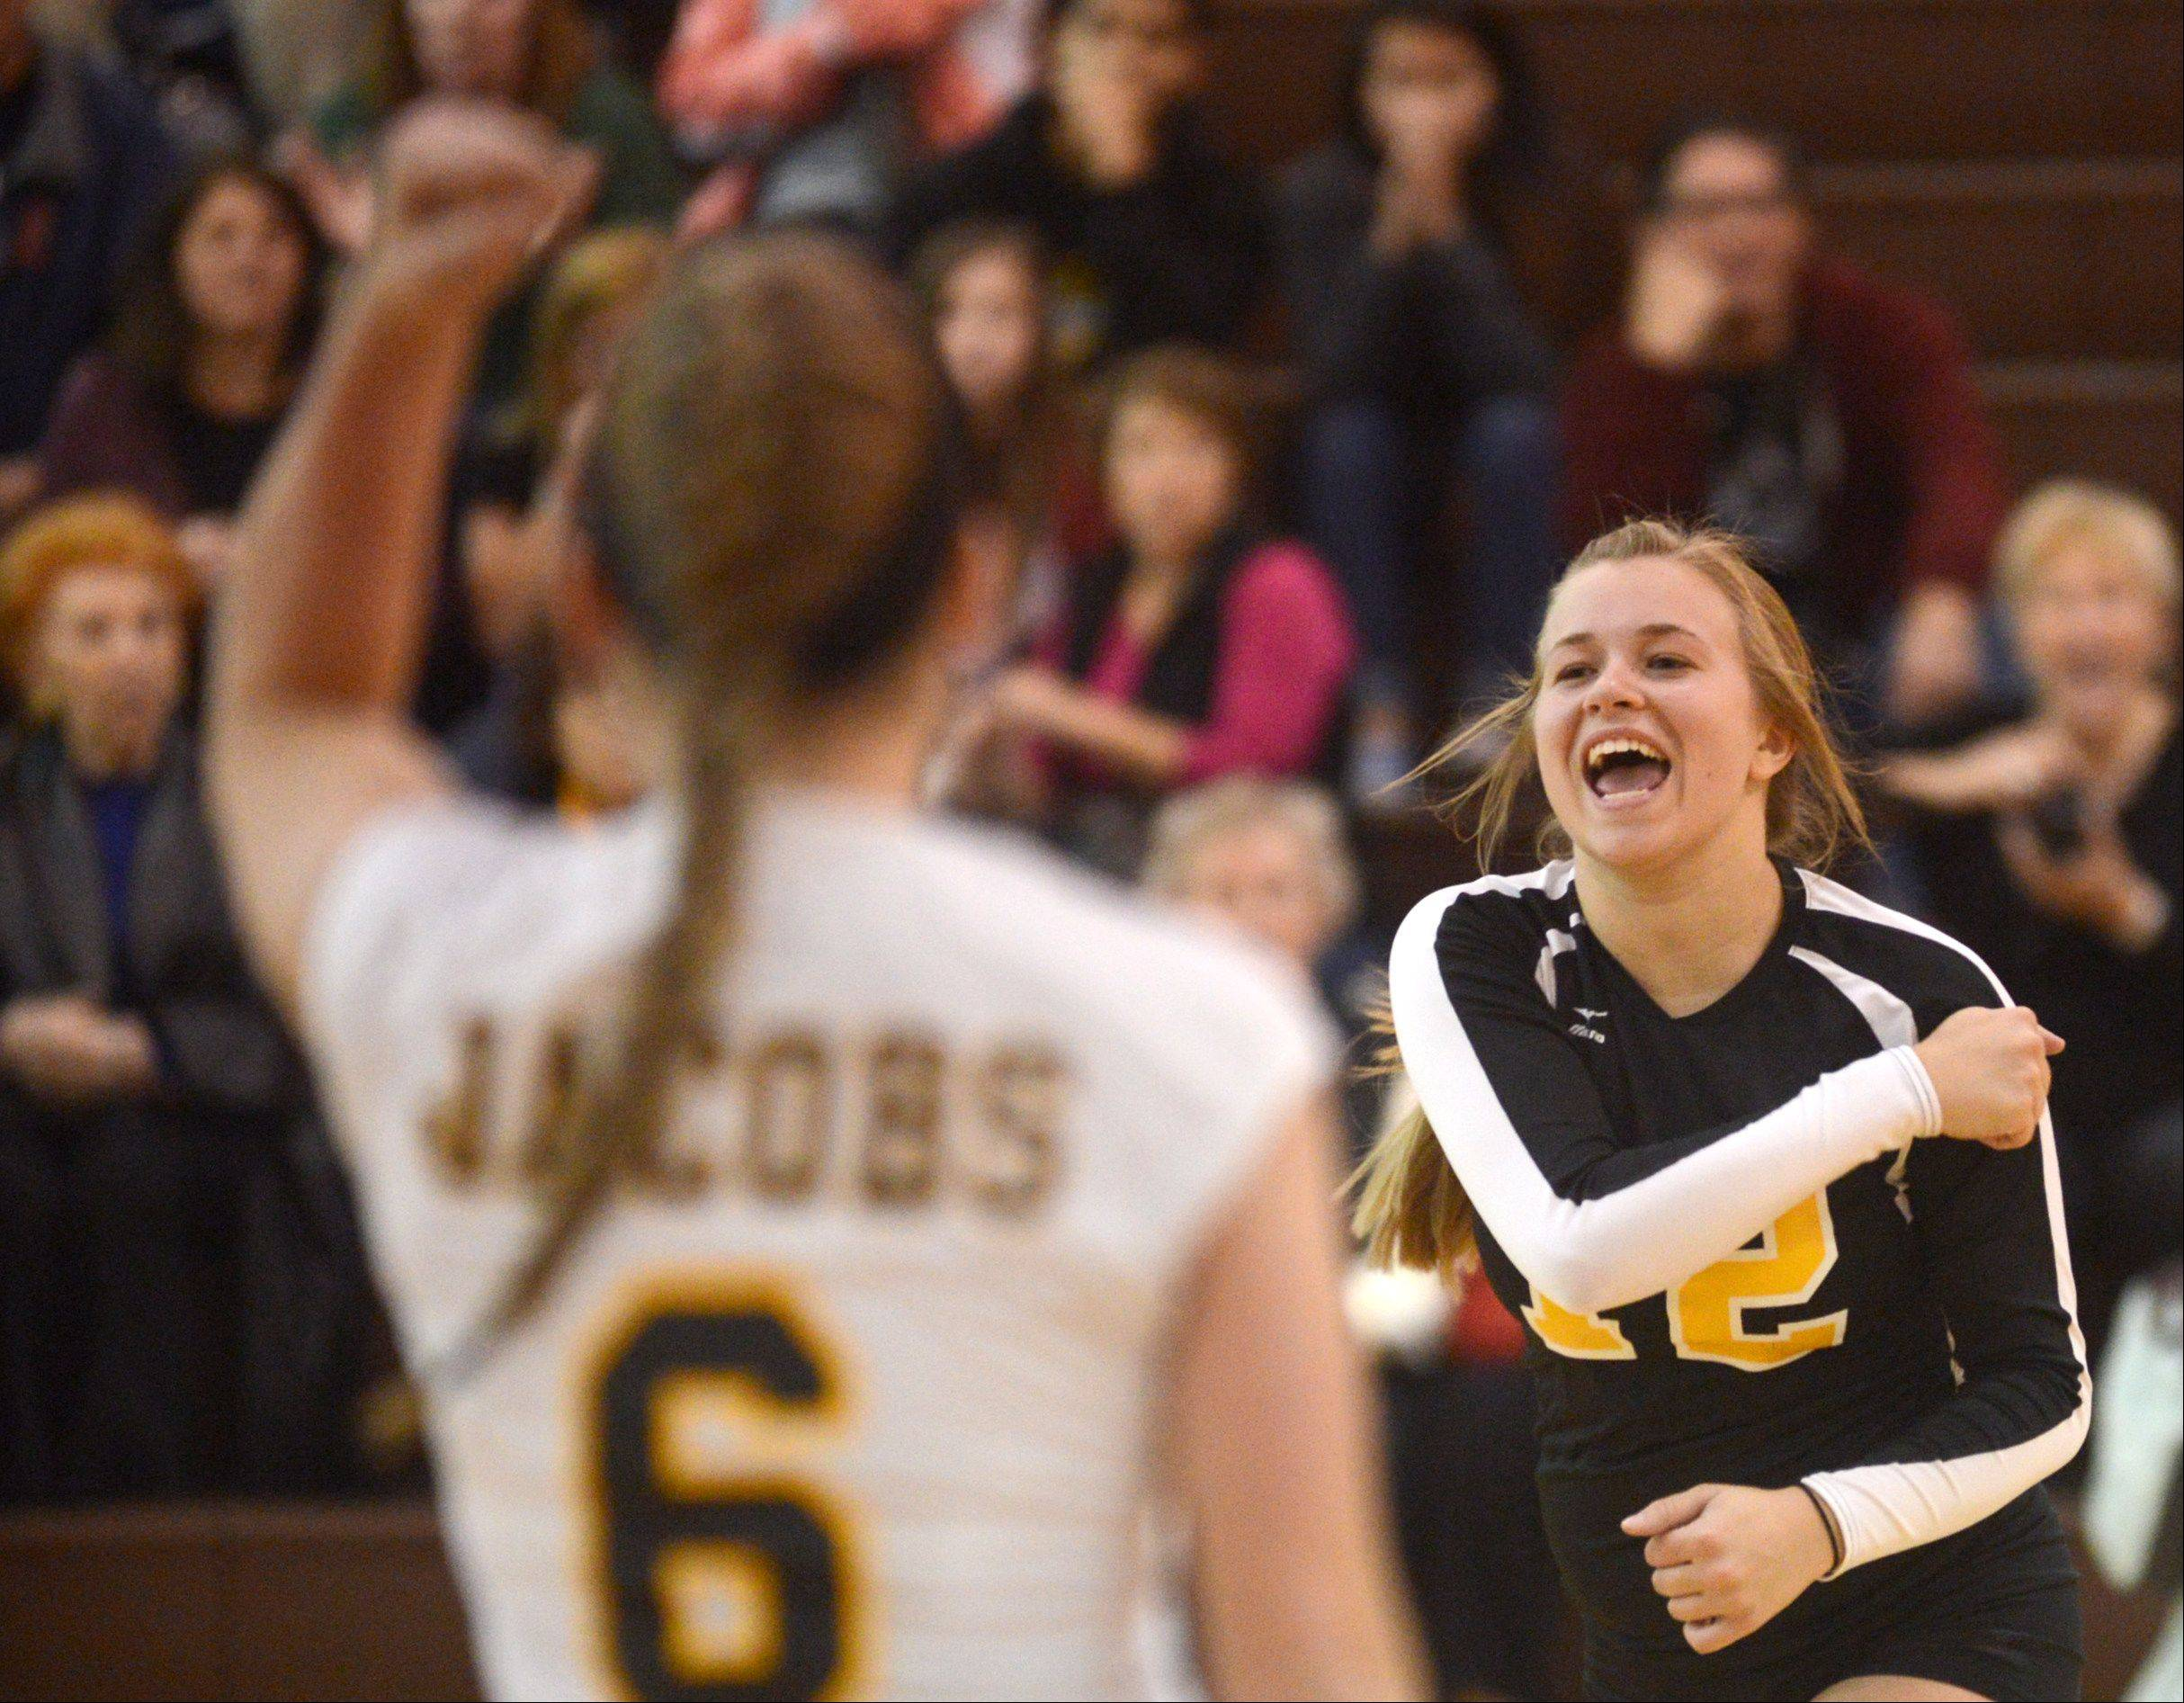 Jacobs' Mackie Traub, right, celebrates with teammate Kassie Kasper, left, during a varsity volleyball game against Dundee-Crown at Algonquin on Tuesday night. Traub was celebrated as the lone senior team member on senior night for the Golden Eagles.